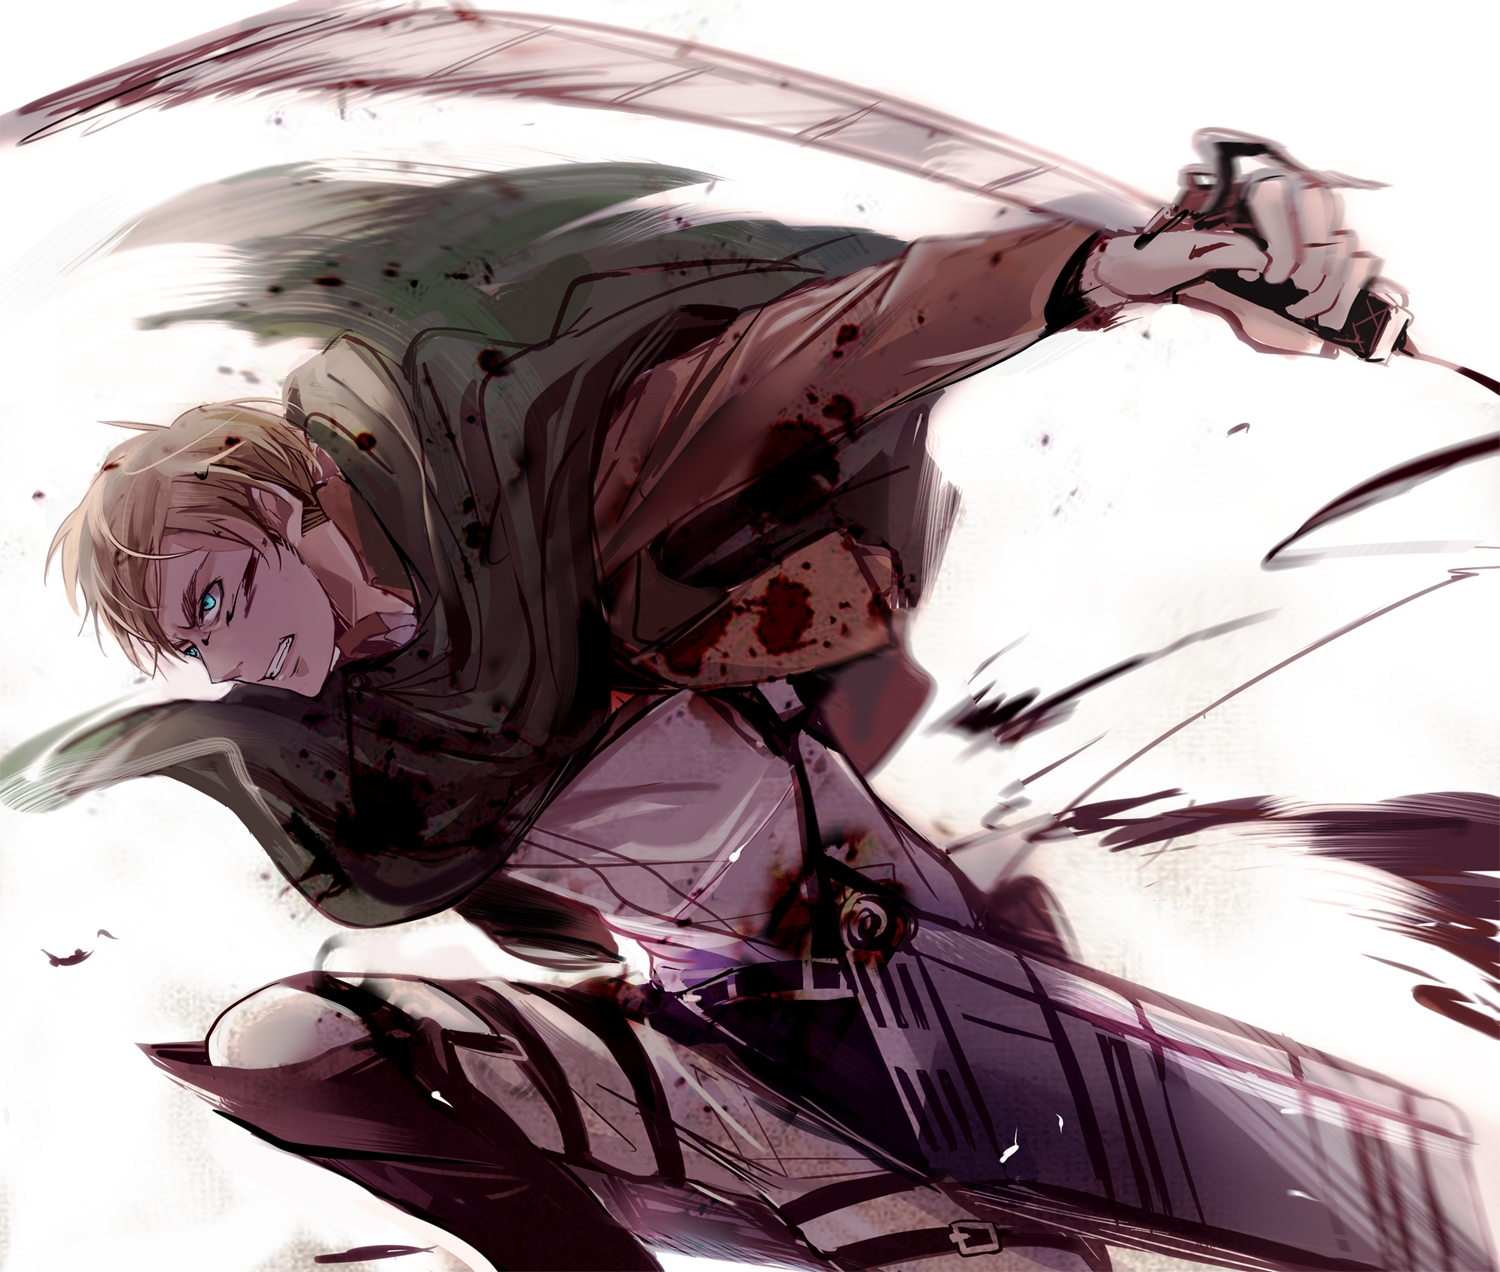 Attack on Titan, Erwin Smith, Shingeki no Kyojin